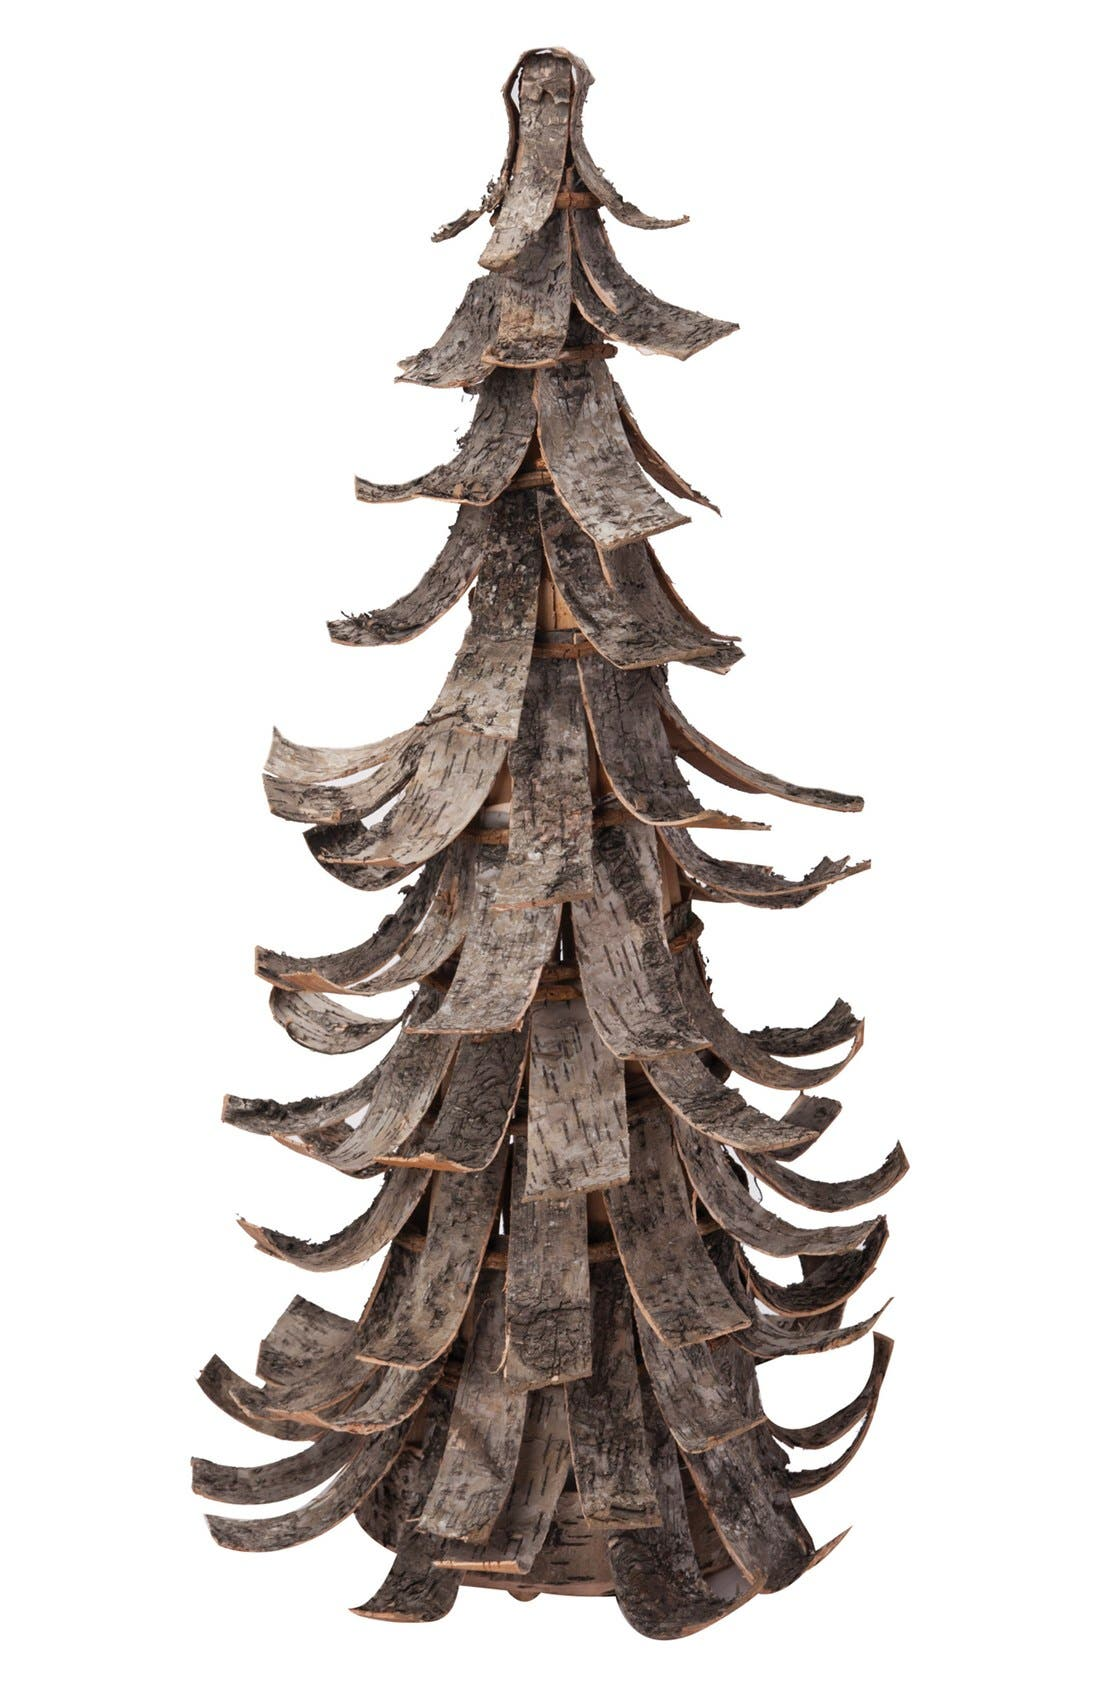 Alternate Image 1 Selected - Foreside Birch Bark Tree Decoration